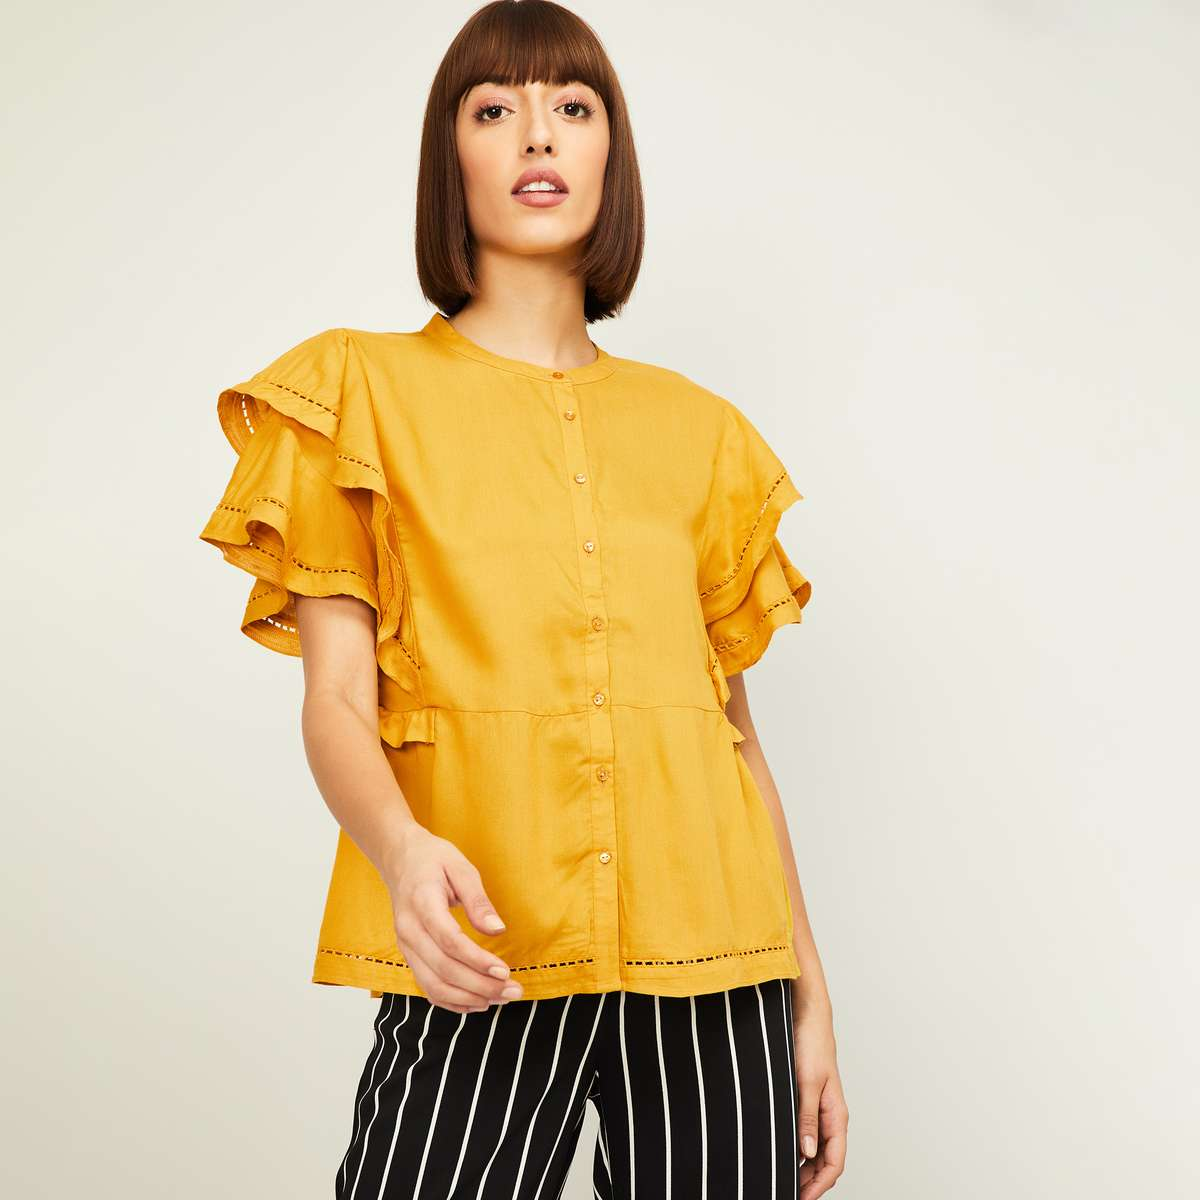 2.ALLEN SOLLY Solid Top with Layered Sleeves and Button Closure